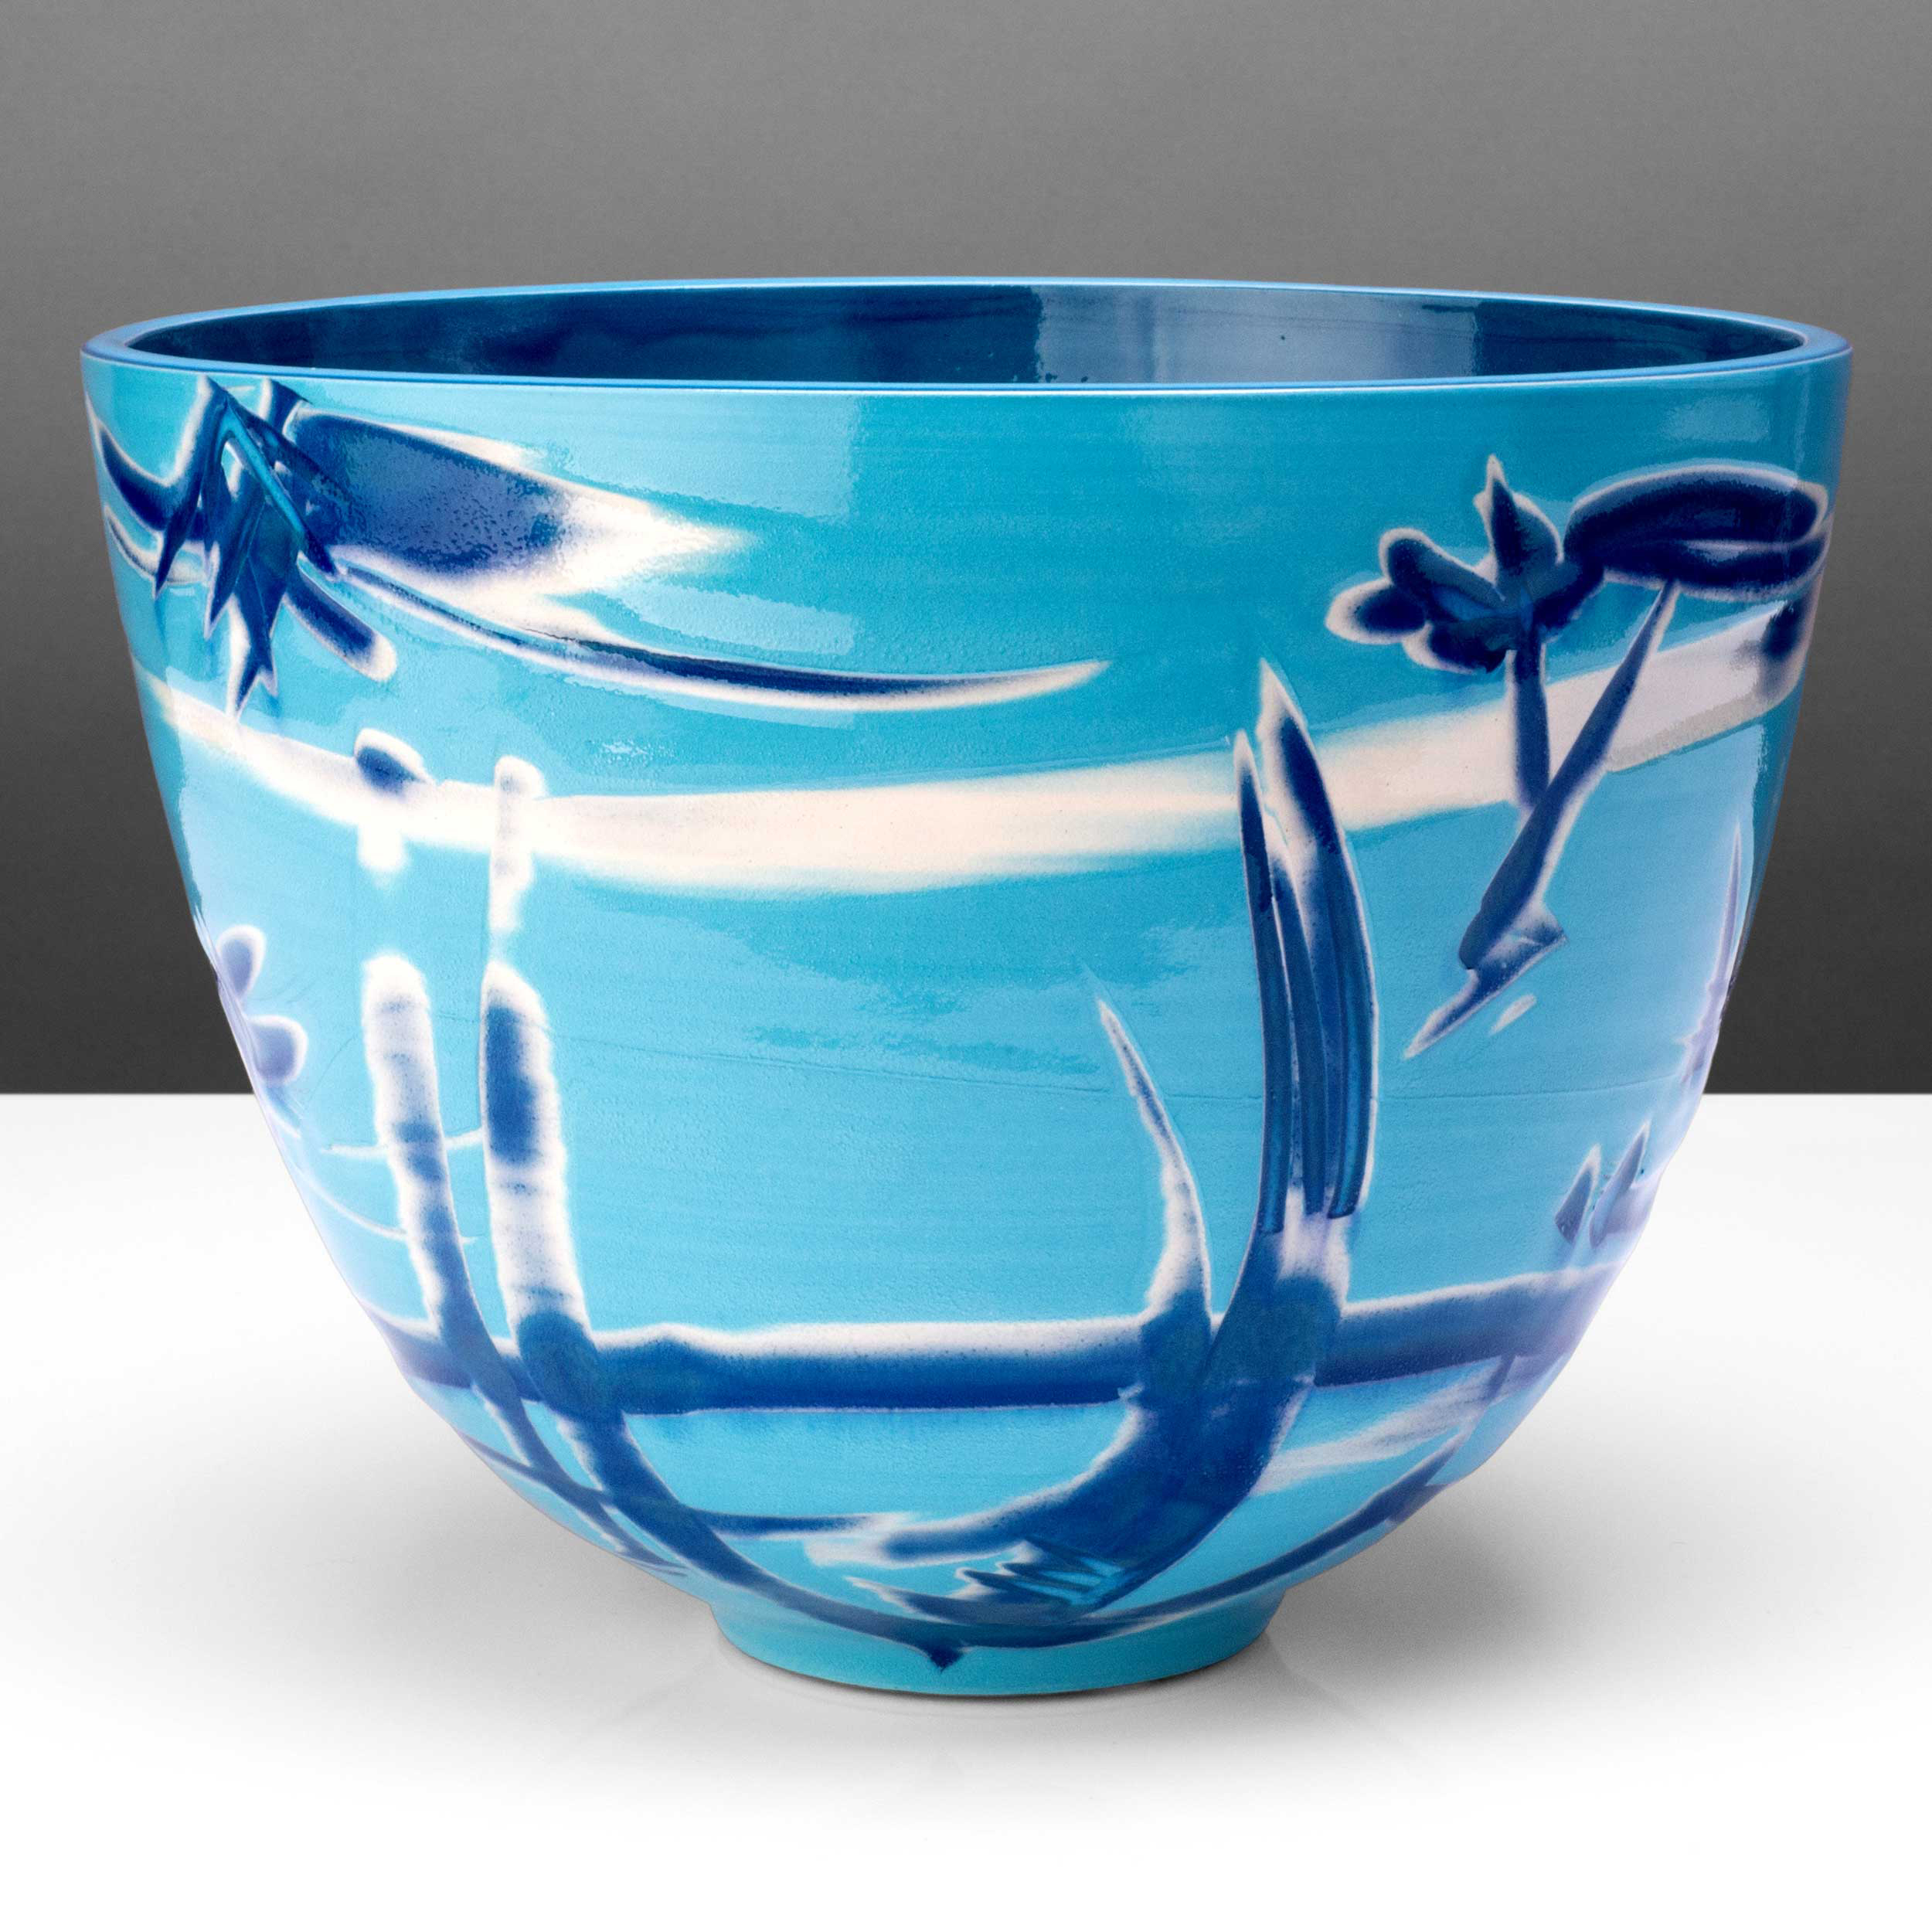 Turquoise Blue Large Ceramic Bowl by Rowena Gilbert